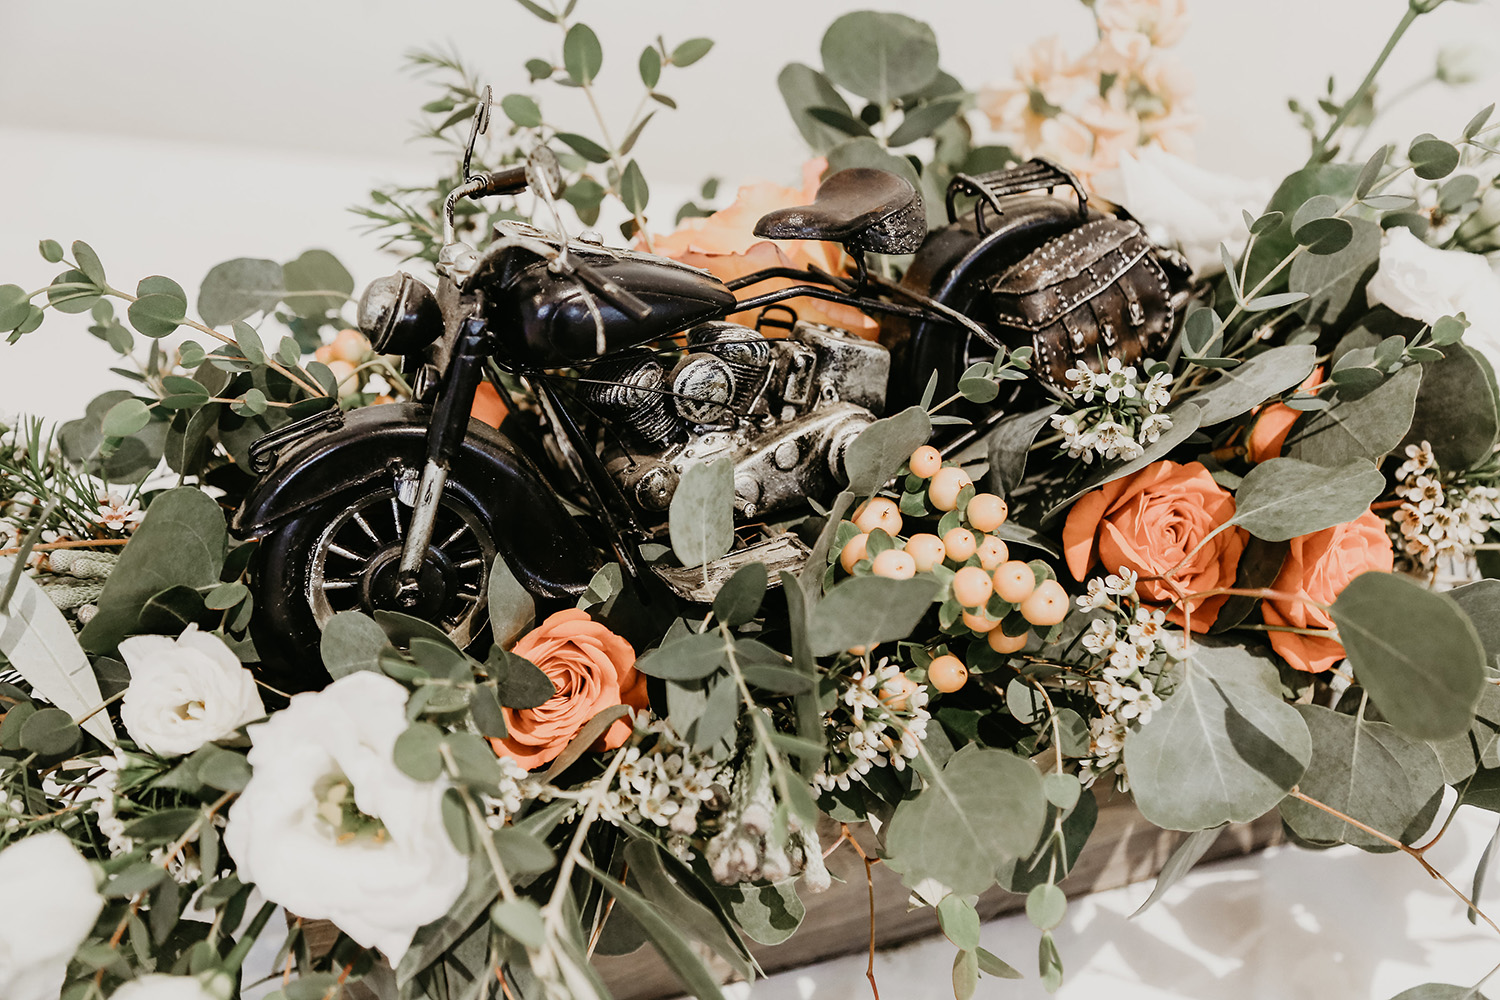 harley-davidson-theme-wedding-11